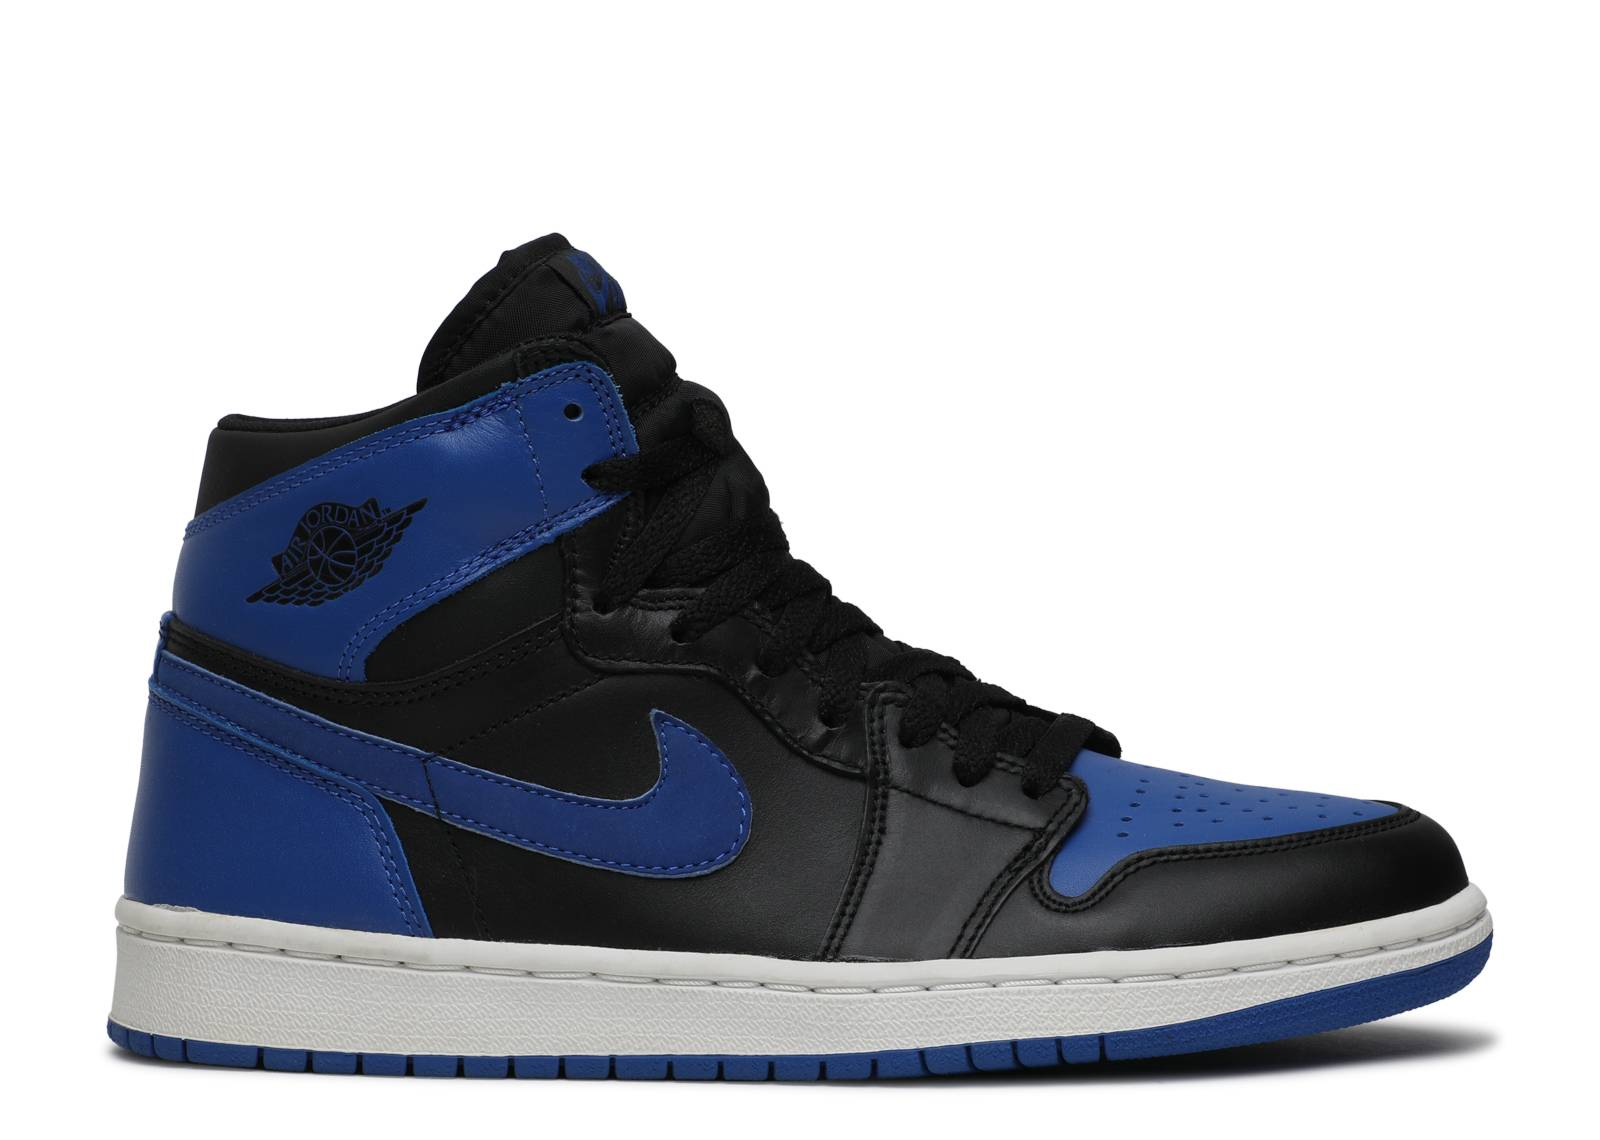 0bc5a8e08ddc Air Jordan 1 Retro - Air Jordan - 136066 041 - black royal blue ...